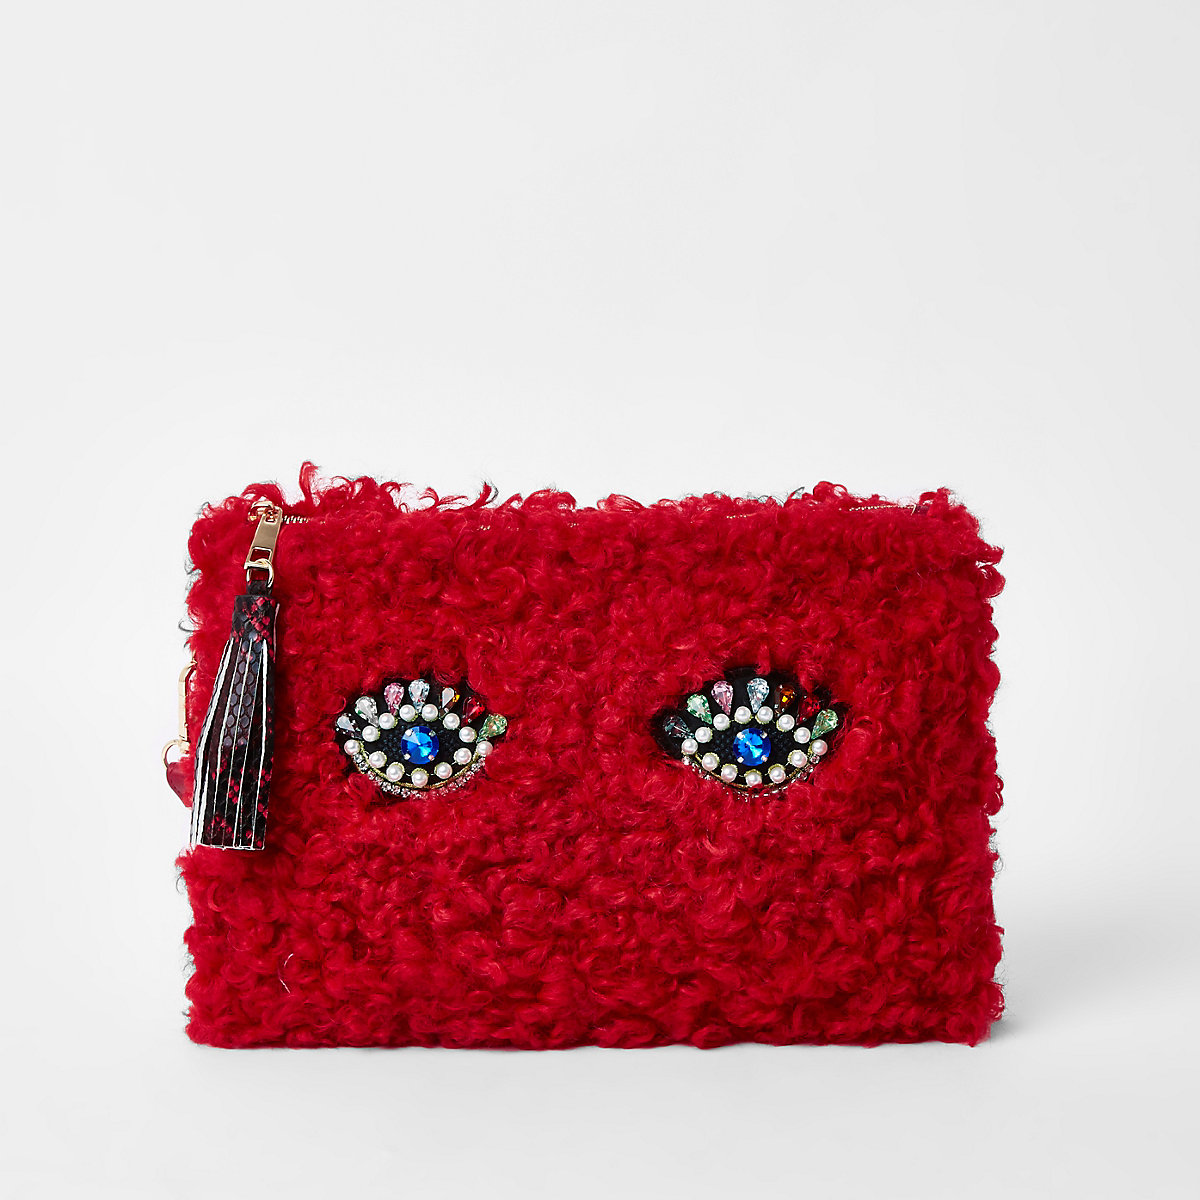 Red borg embellished eye clutch bag